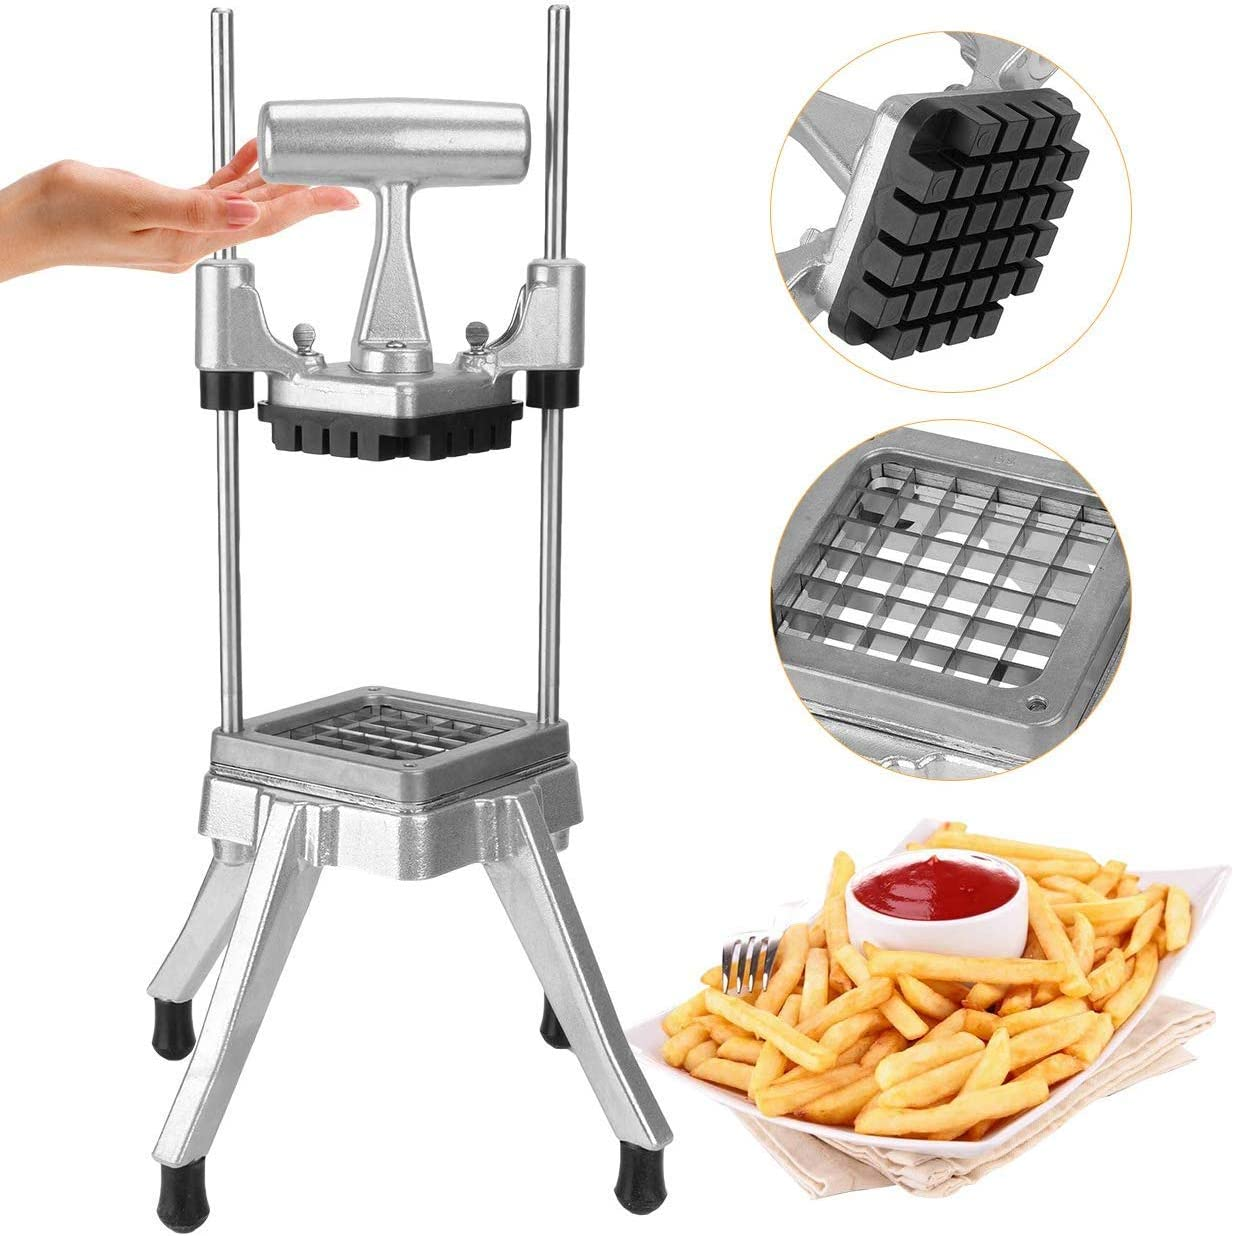 """WICHEMI Vegetable Fruit Dicer Commercial Easy Chopper Dicer Cutter Kattex Chopper Stainless Steel for Onion Tomato Peppers Potatoes Mushrooms (1/2"""" Blade)"""